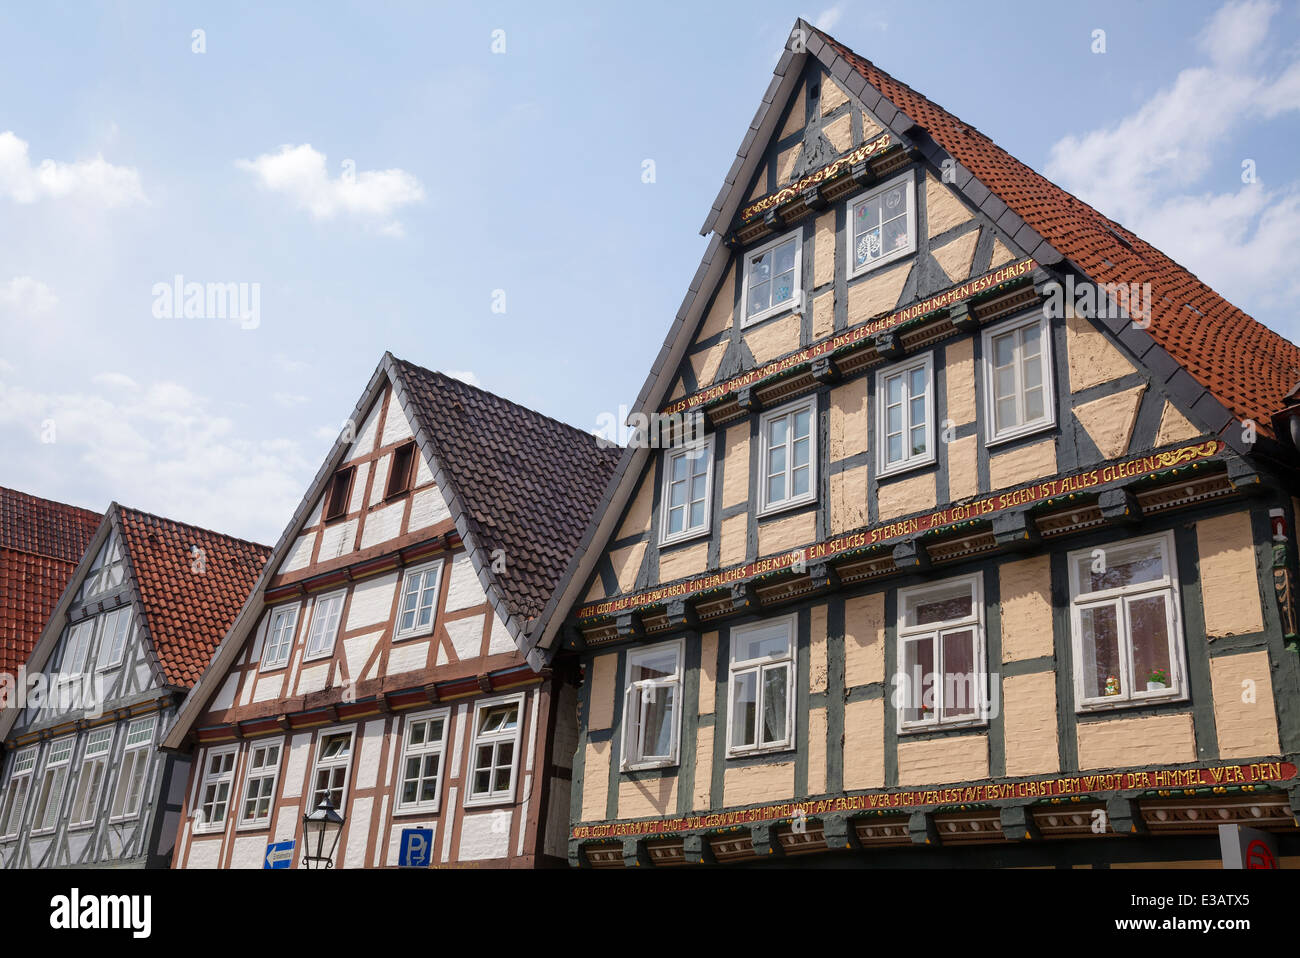 timber frame buildings on Schuhstrasse, Celle, Lower Saxony, Germany - Stock Image